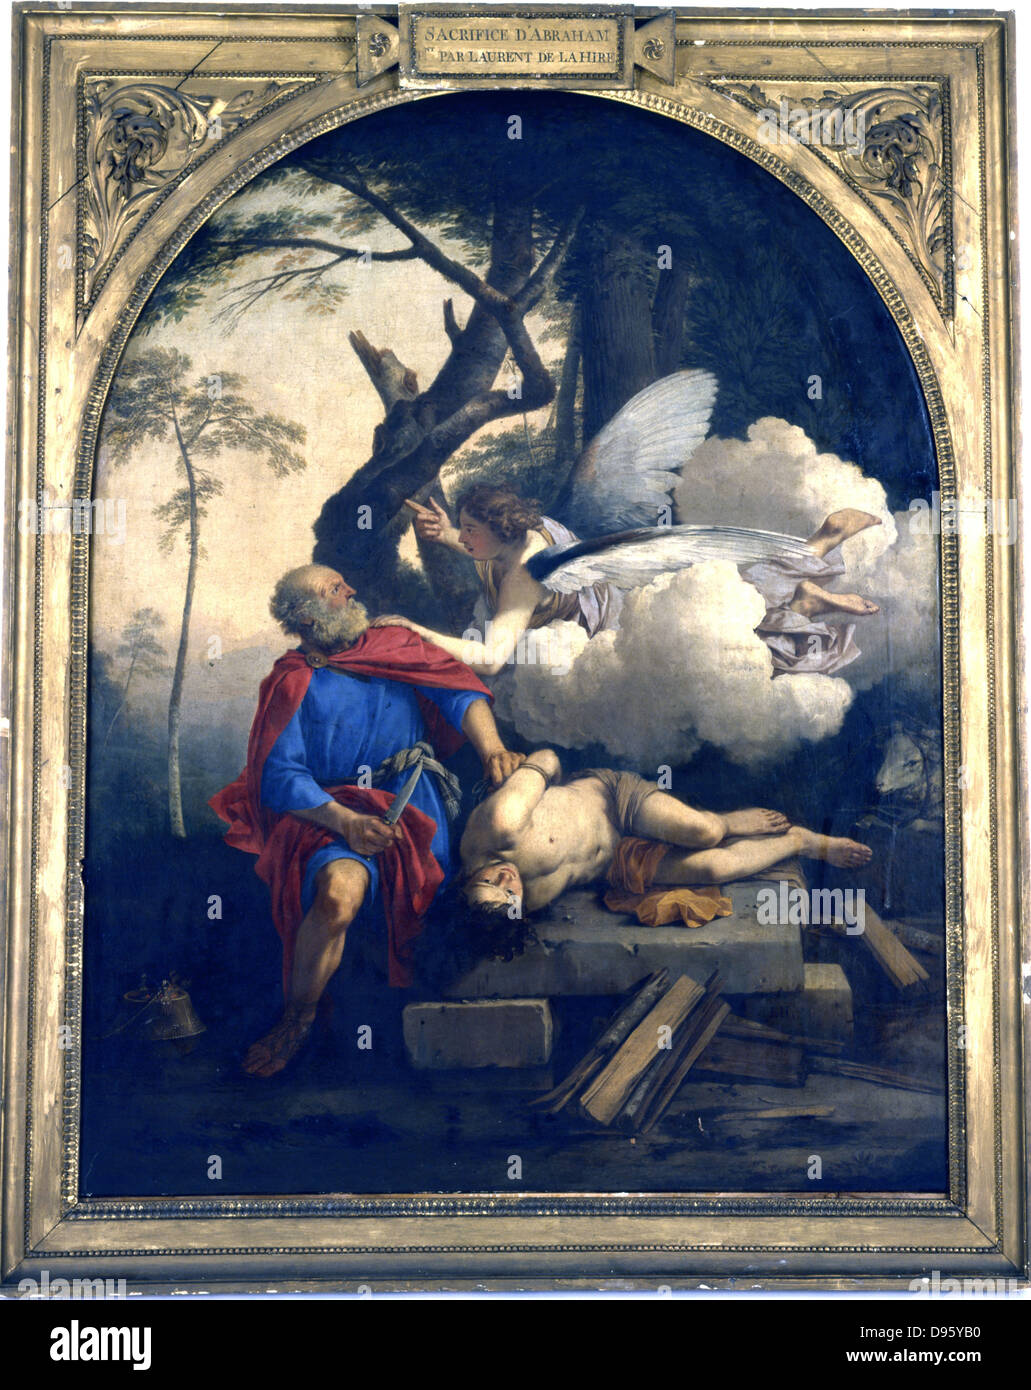 The Sacrifice of Abraham. Angel of the Lord stays Abraham's hand  before he sacirfices Isaac on the order of the Stock Photo